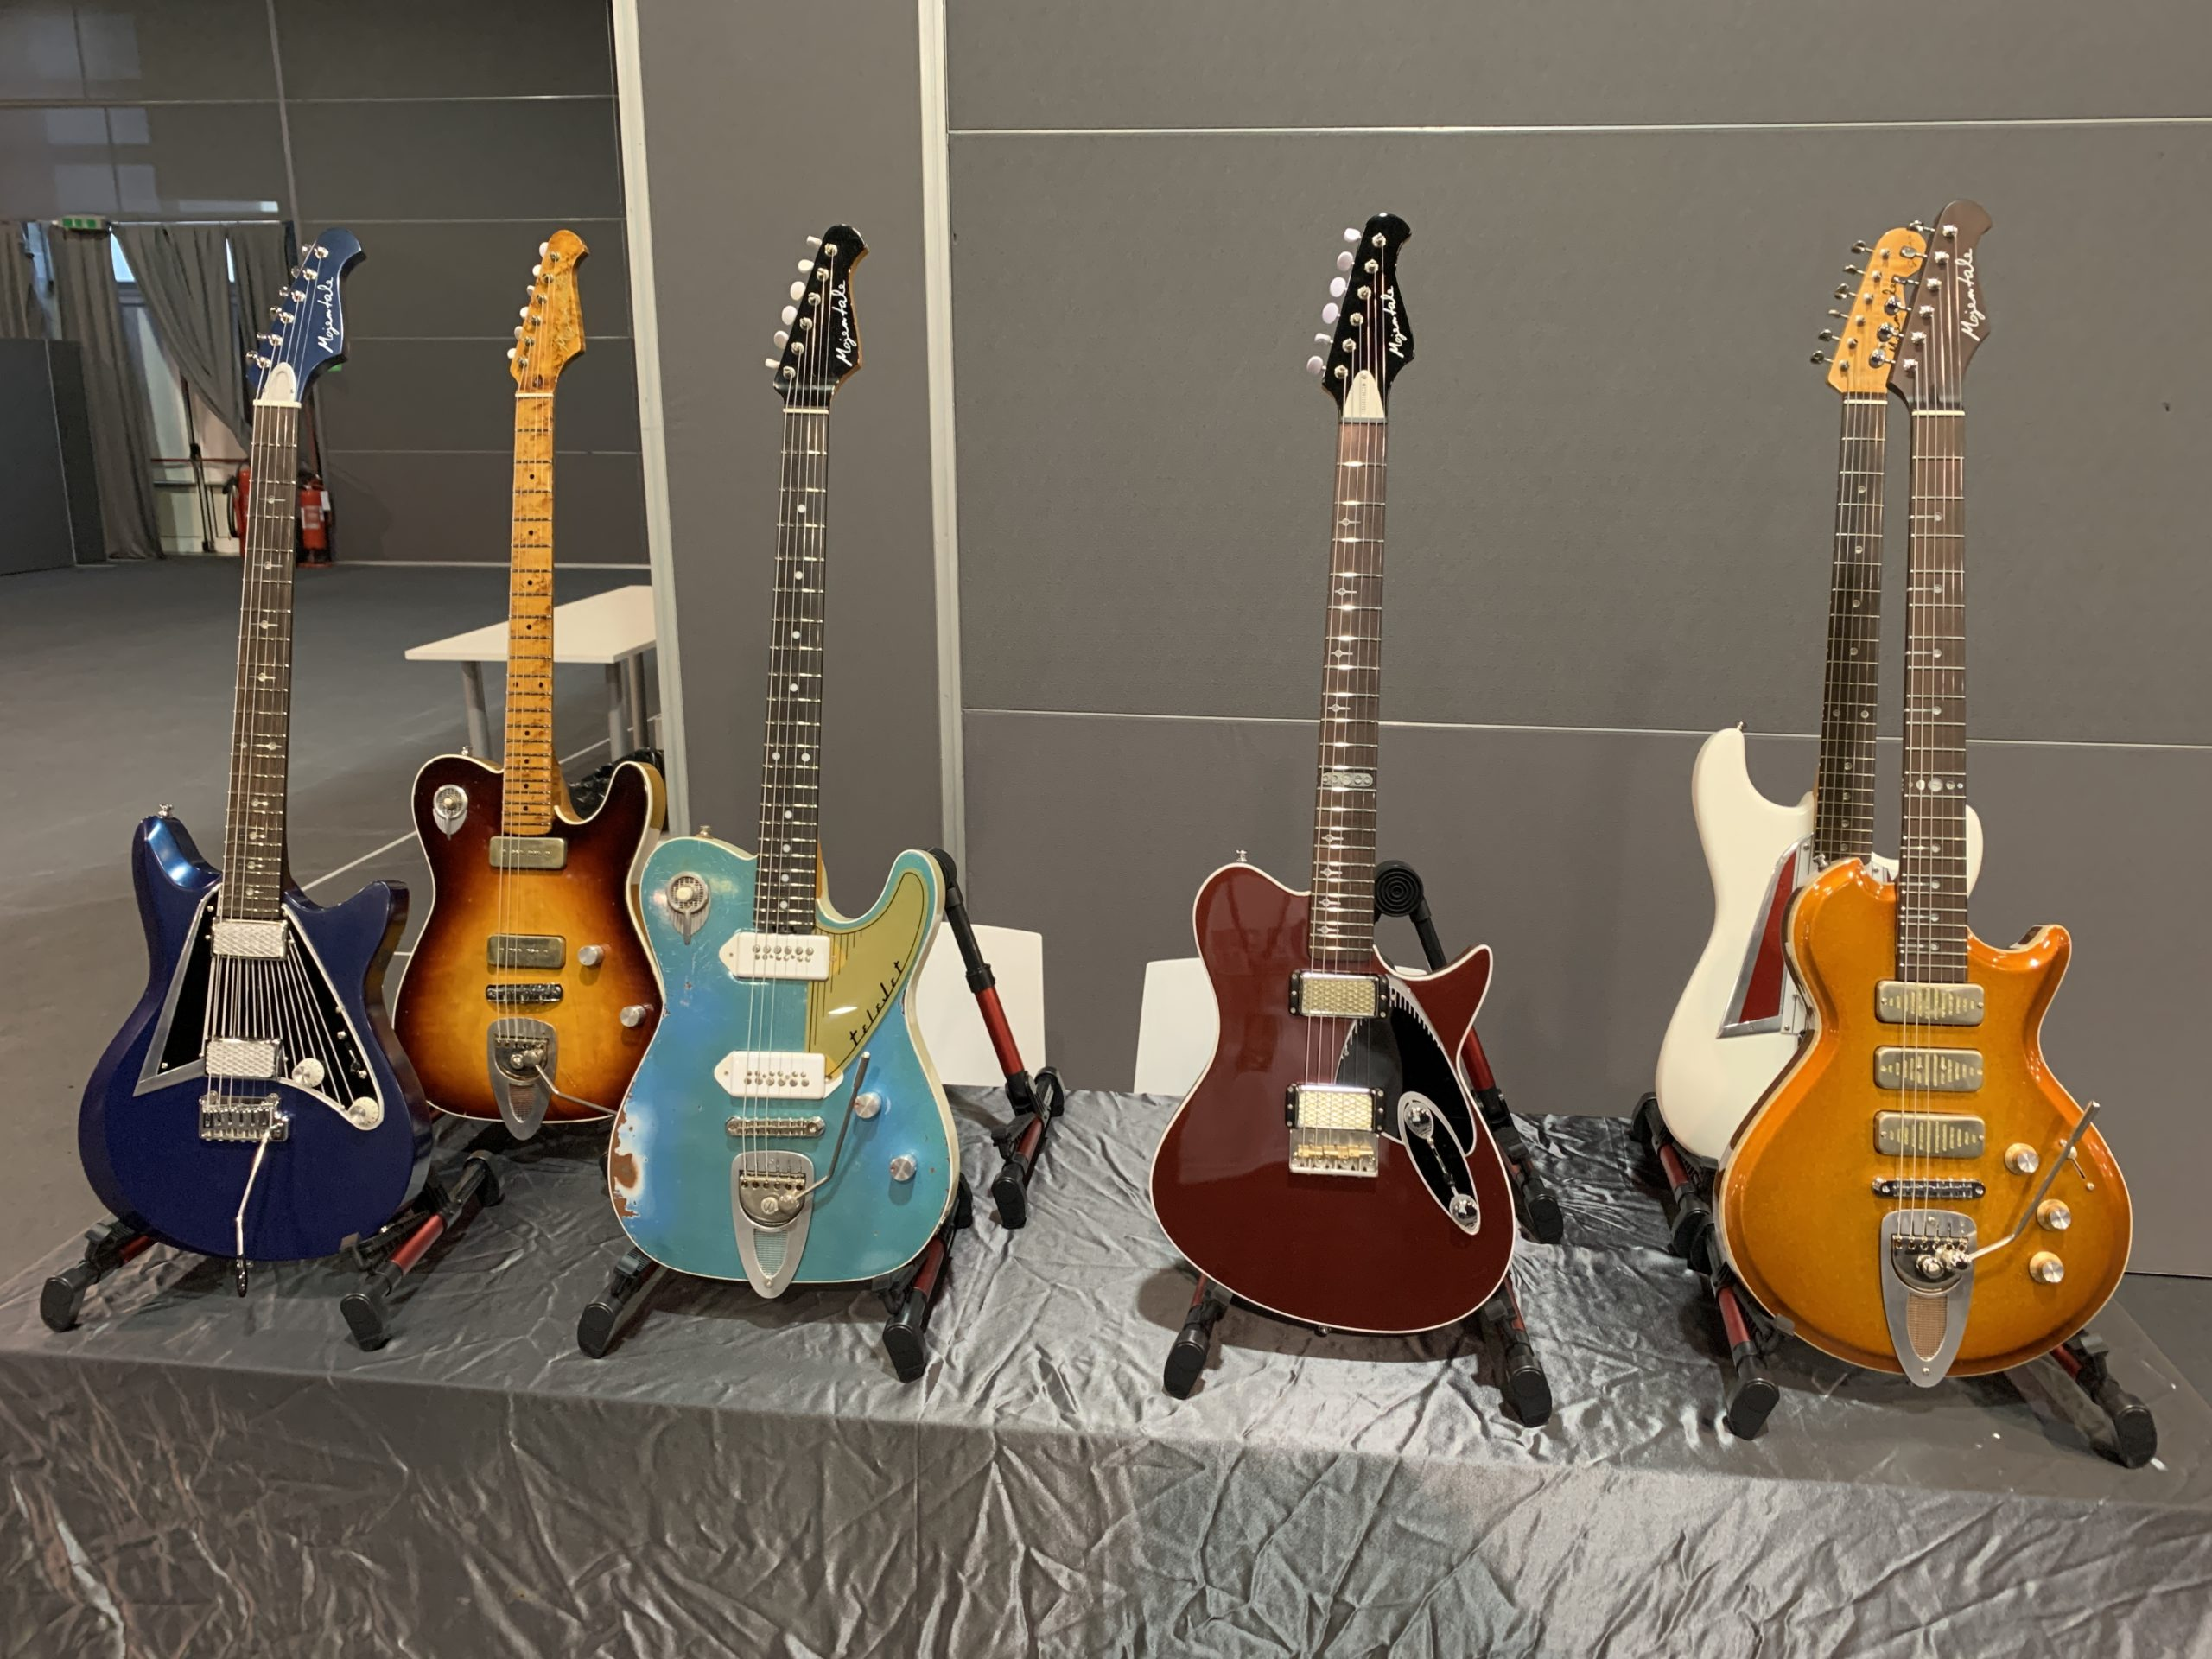 Guitar Show Italy in Padova, 1h from Venice, installation day